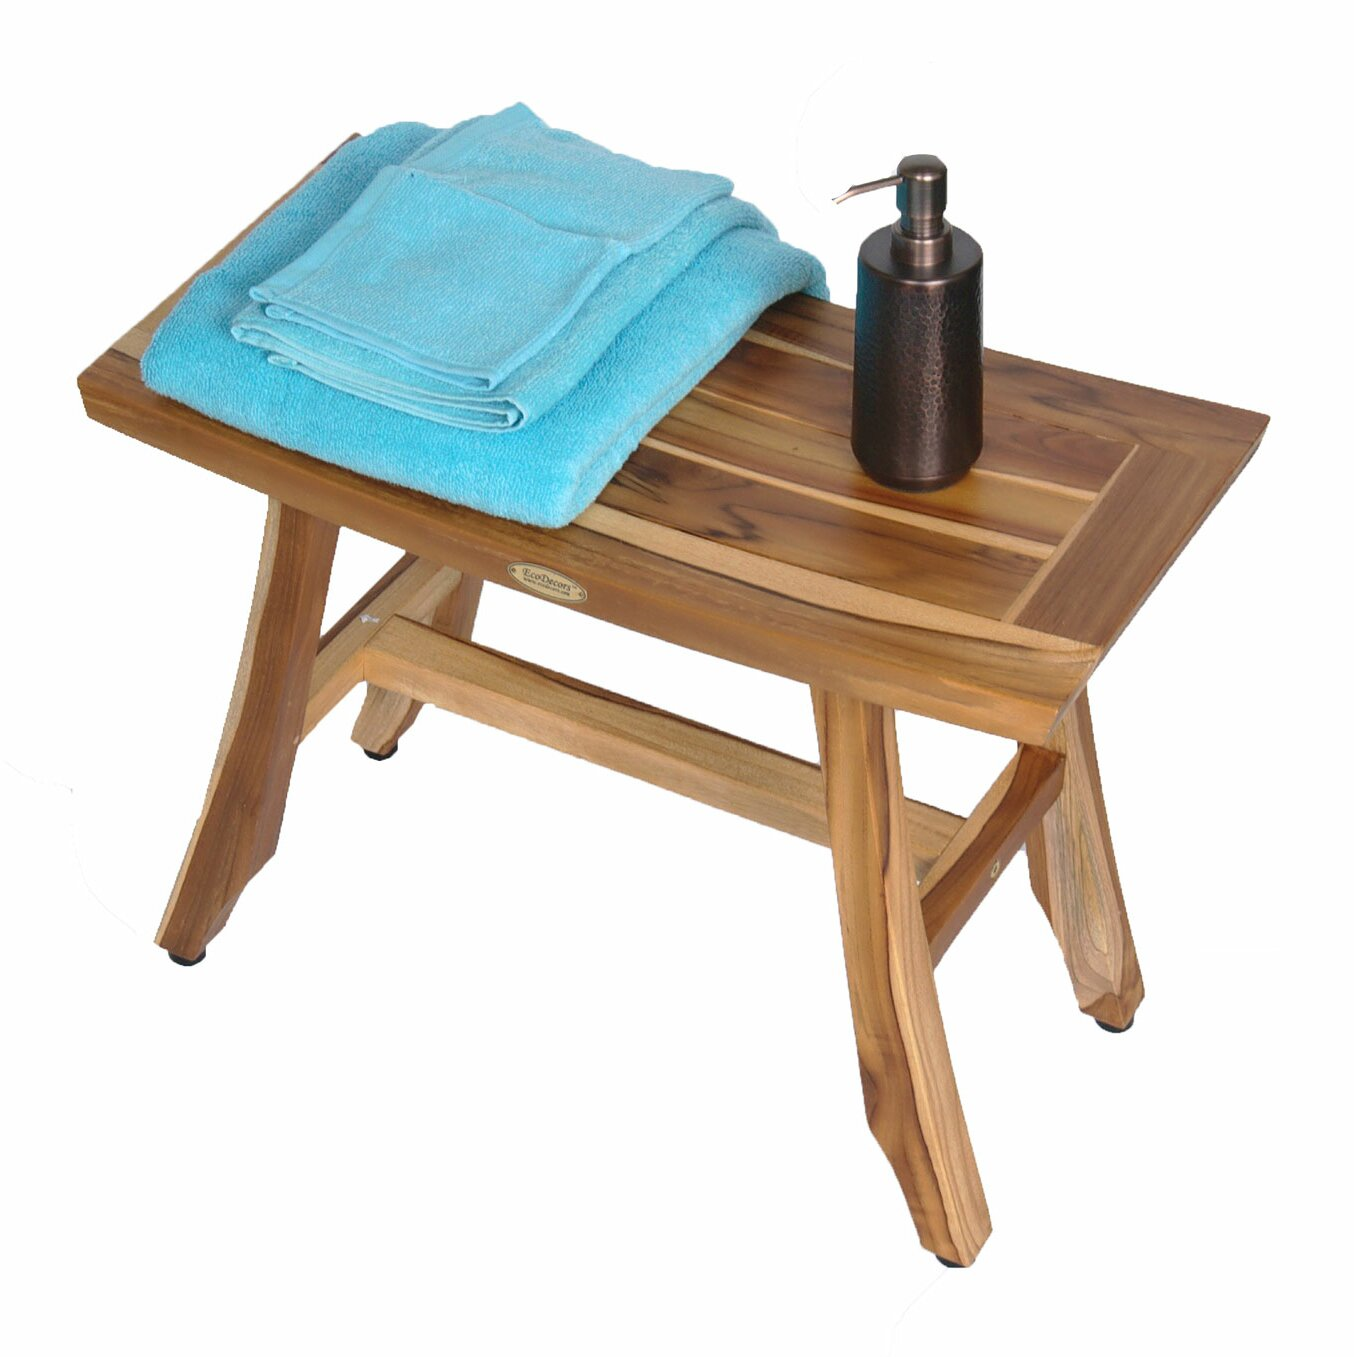 Ecodecors Satori Wood Shower Bench Reviews Wayfair